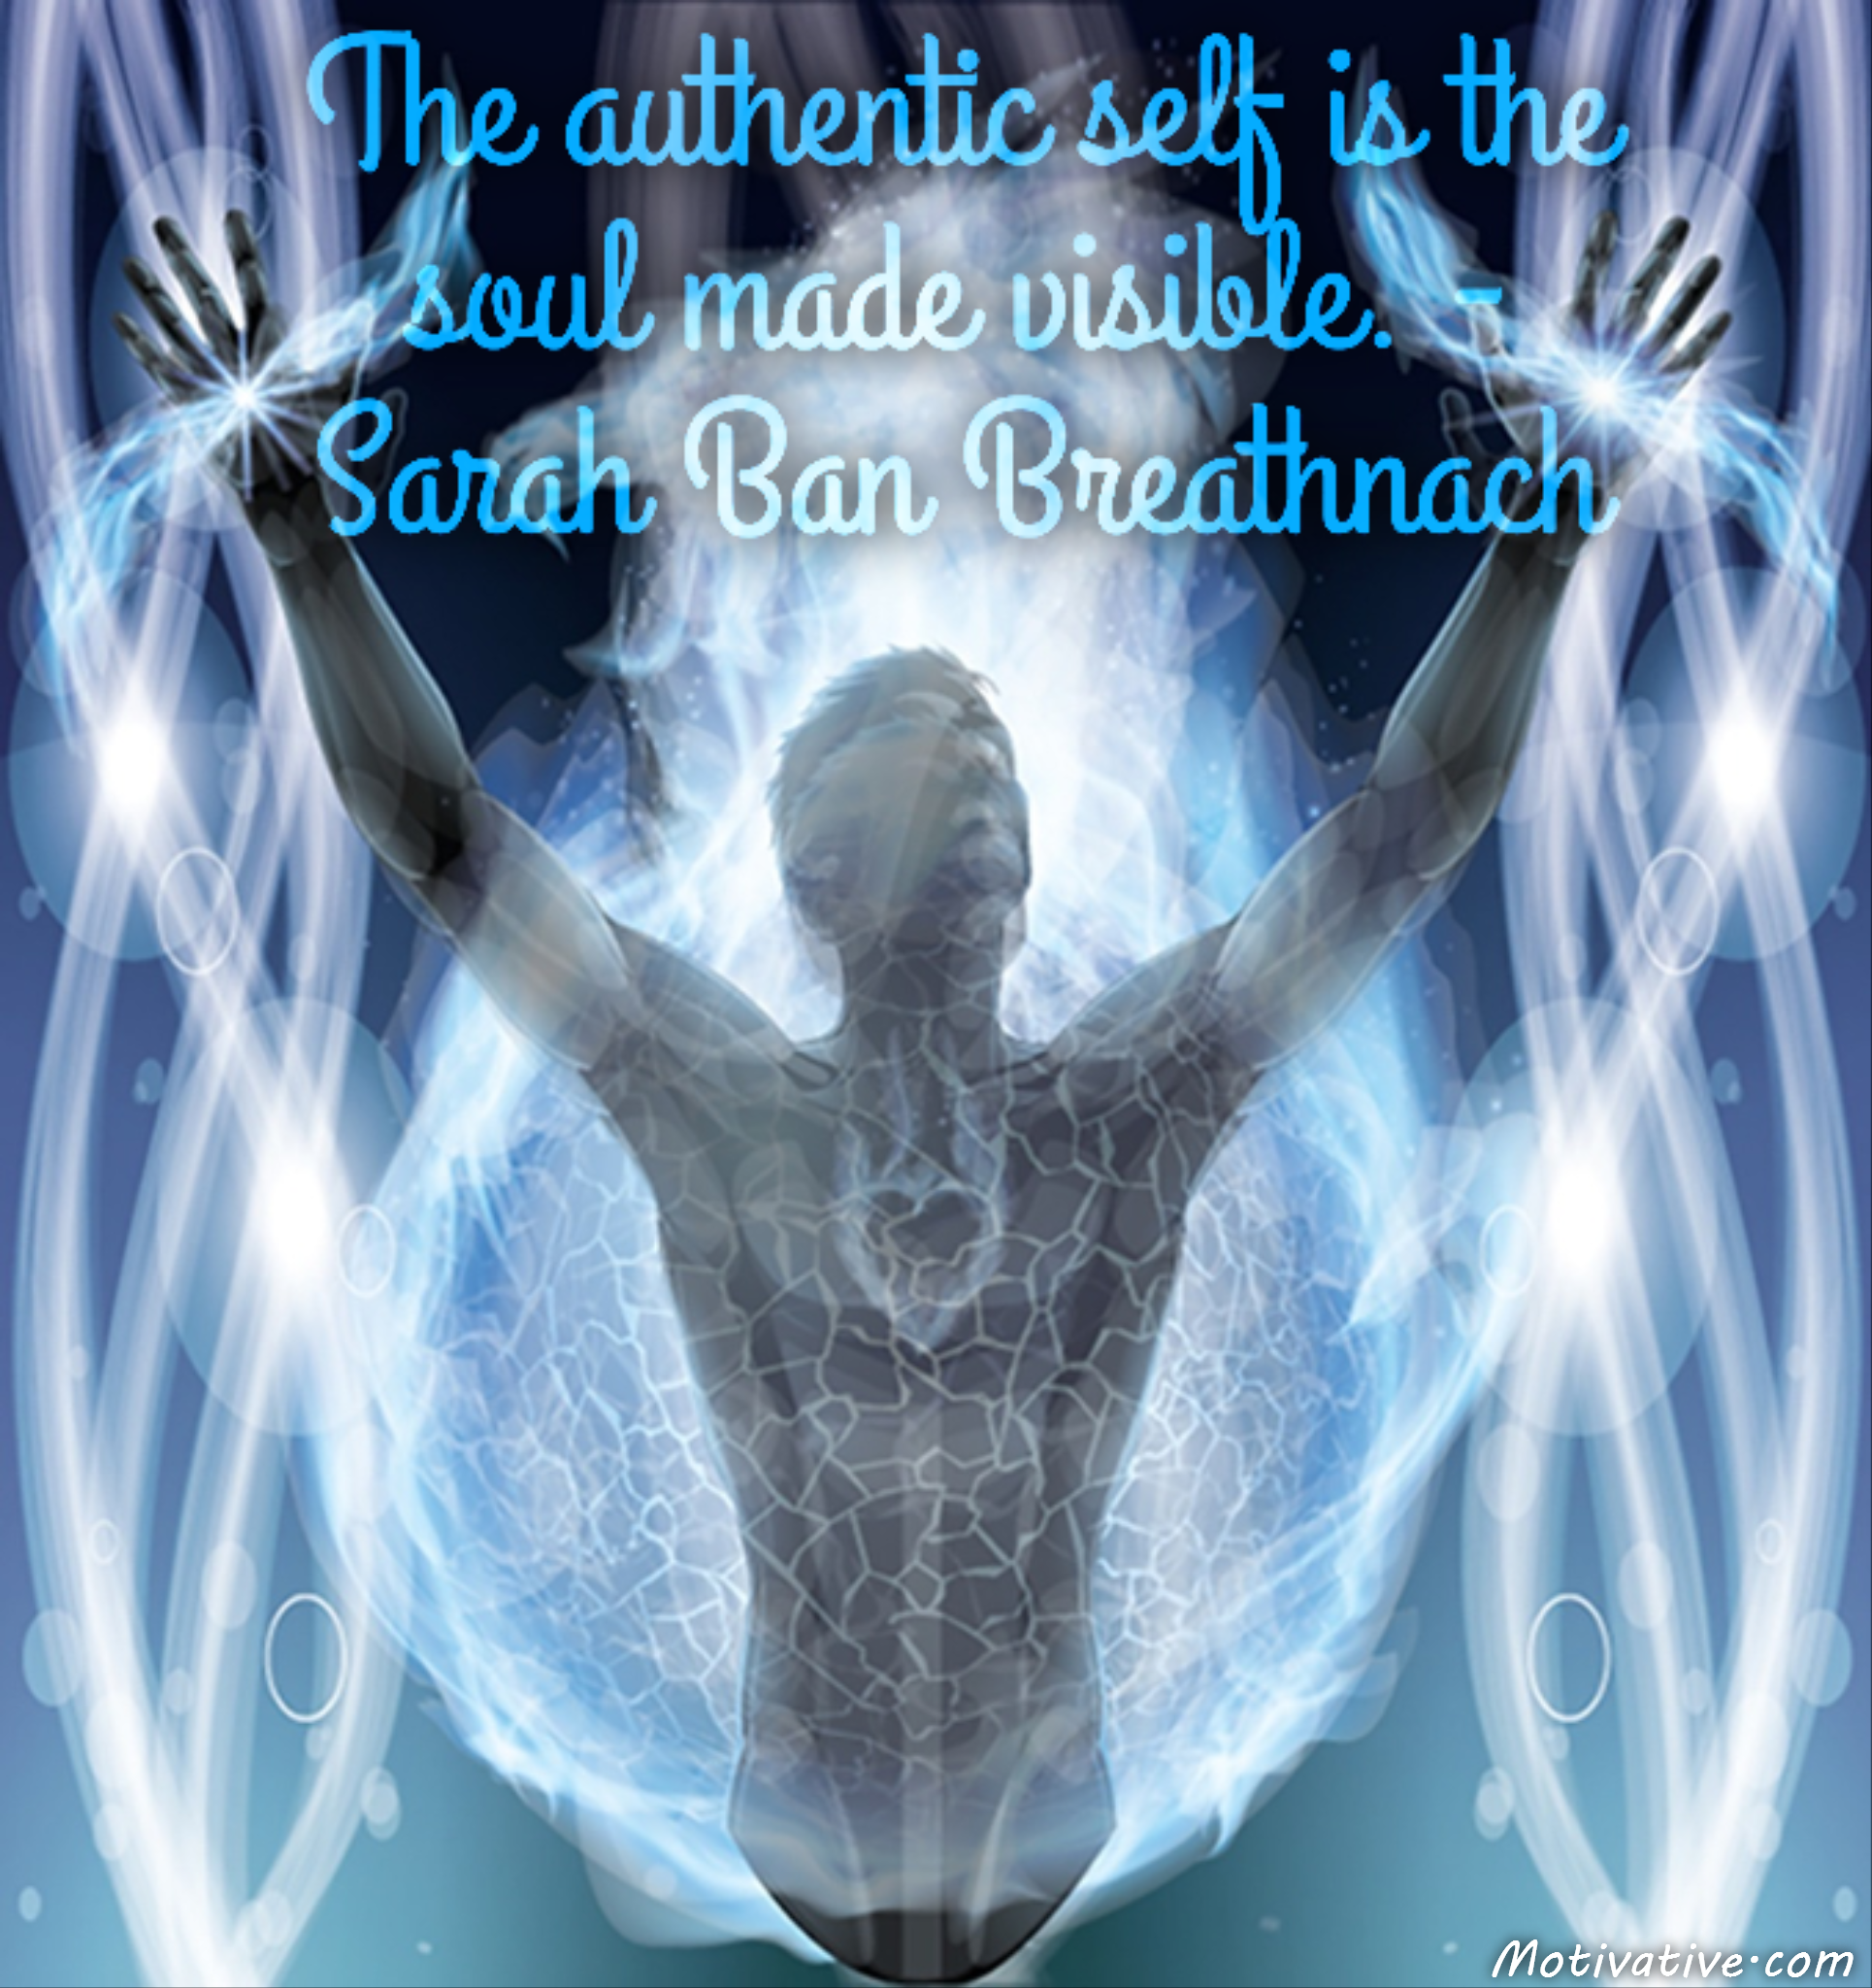 The authentic self is the soul made visible. – Sarah Ban Breathnach